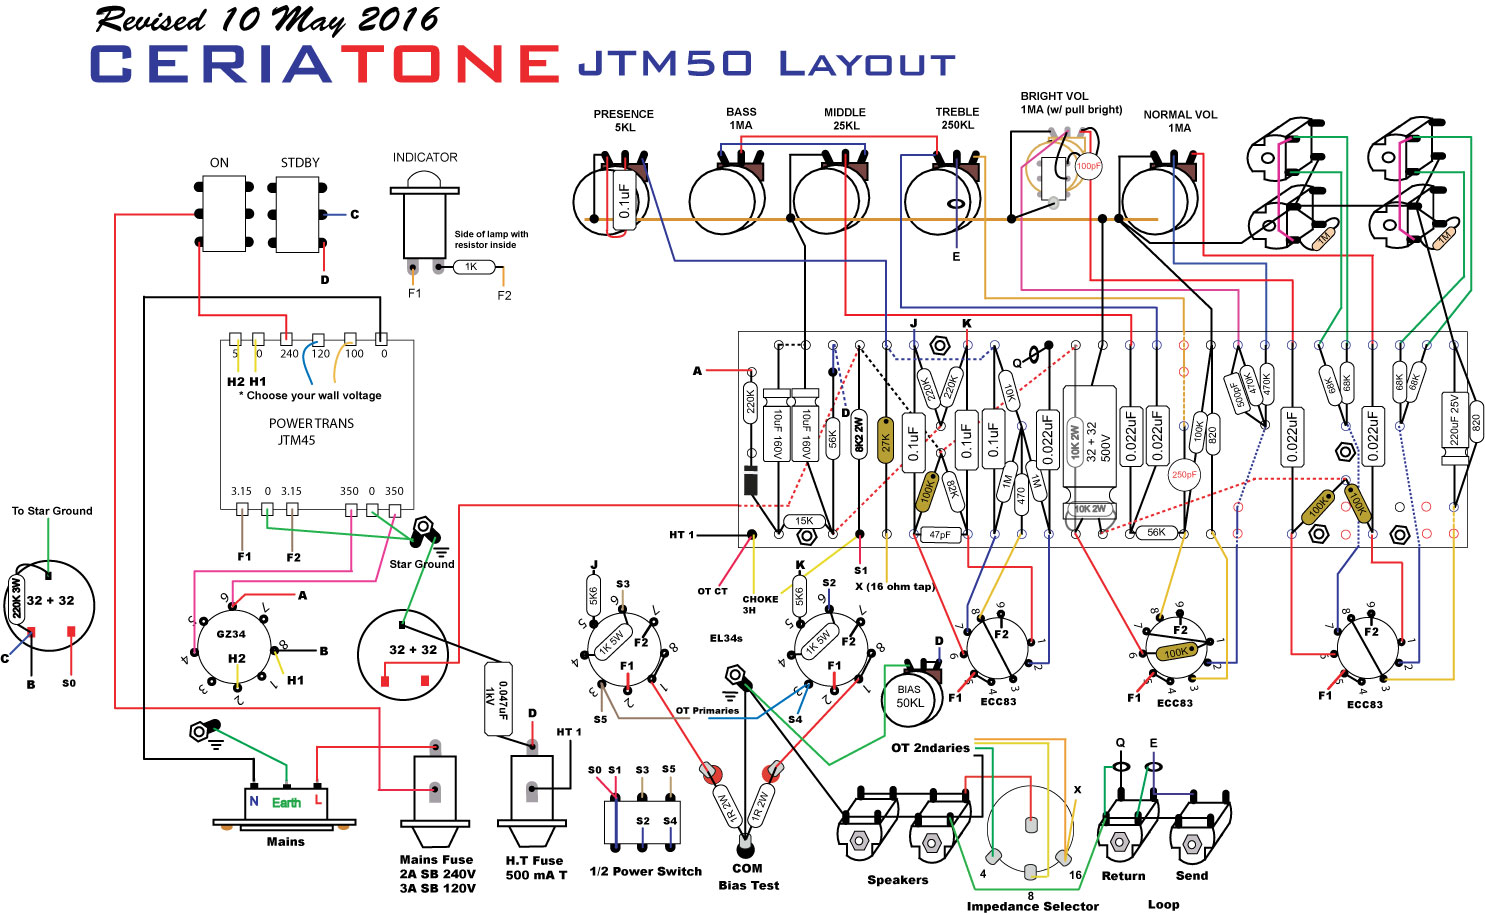 CeriatoneUSA Manuals and Layout Diagrams on hiwatt schematic, 18 watt tmb schematic, marshall 18 watt amp kit, 120 watt tube amp schematic, peavey 260 schematic, marshall amp schematics, trinity 18 watt mkii schematic, 18 watt amp schematic, marshall 2210 schematics, marshall 50 watt plexi layout, bluesbreaker schematic, 5 watt tube amp with reverb schematic,